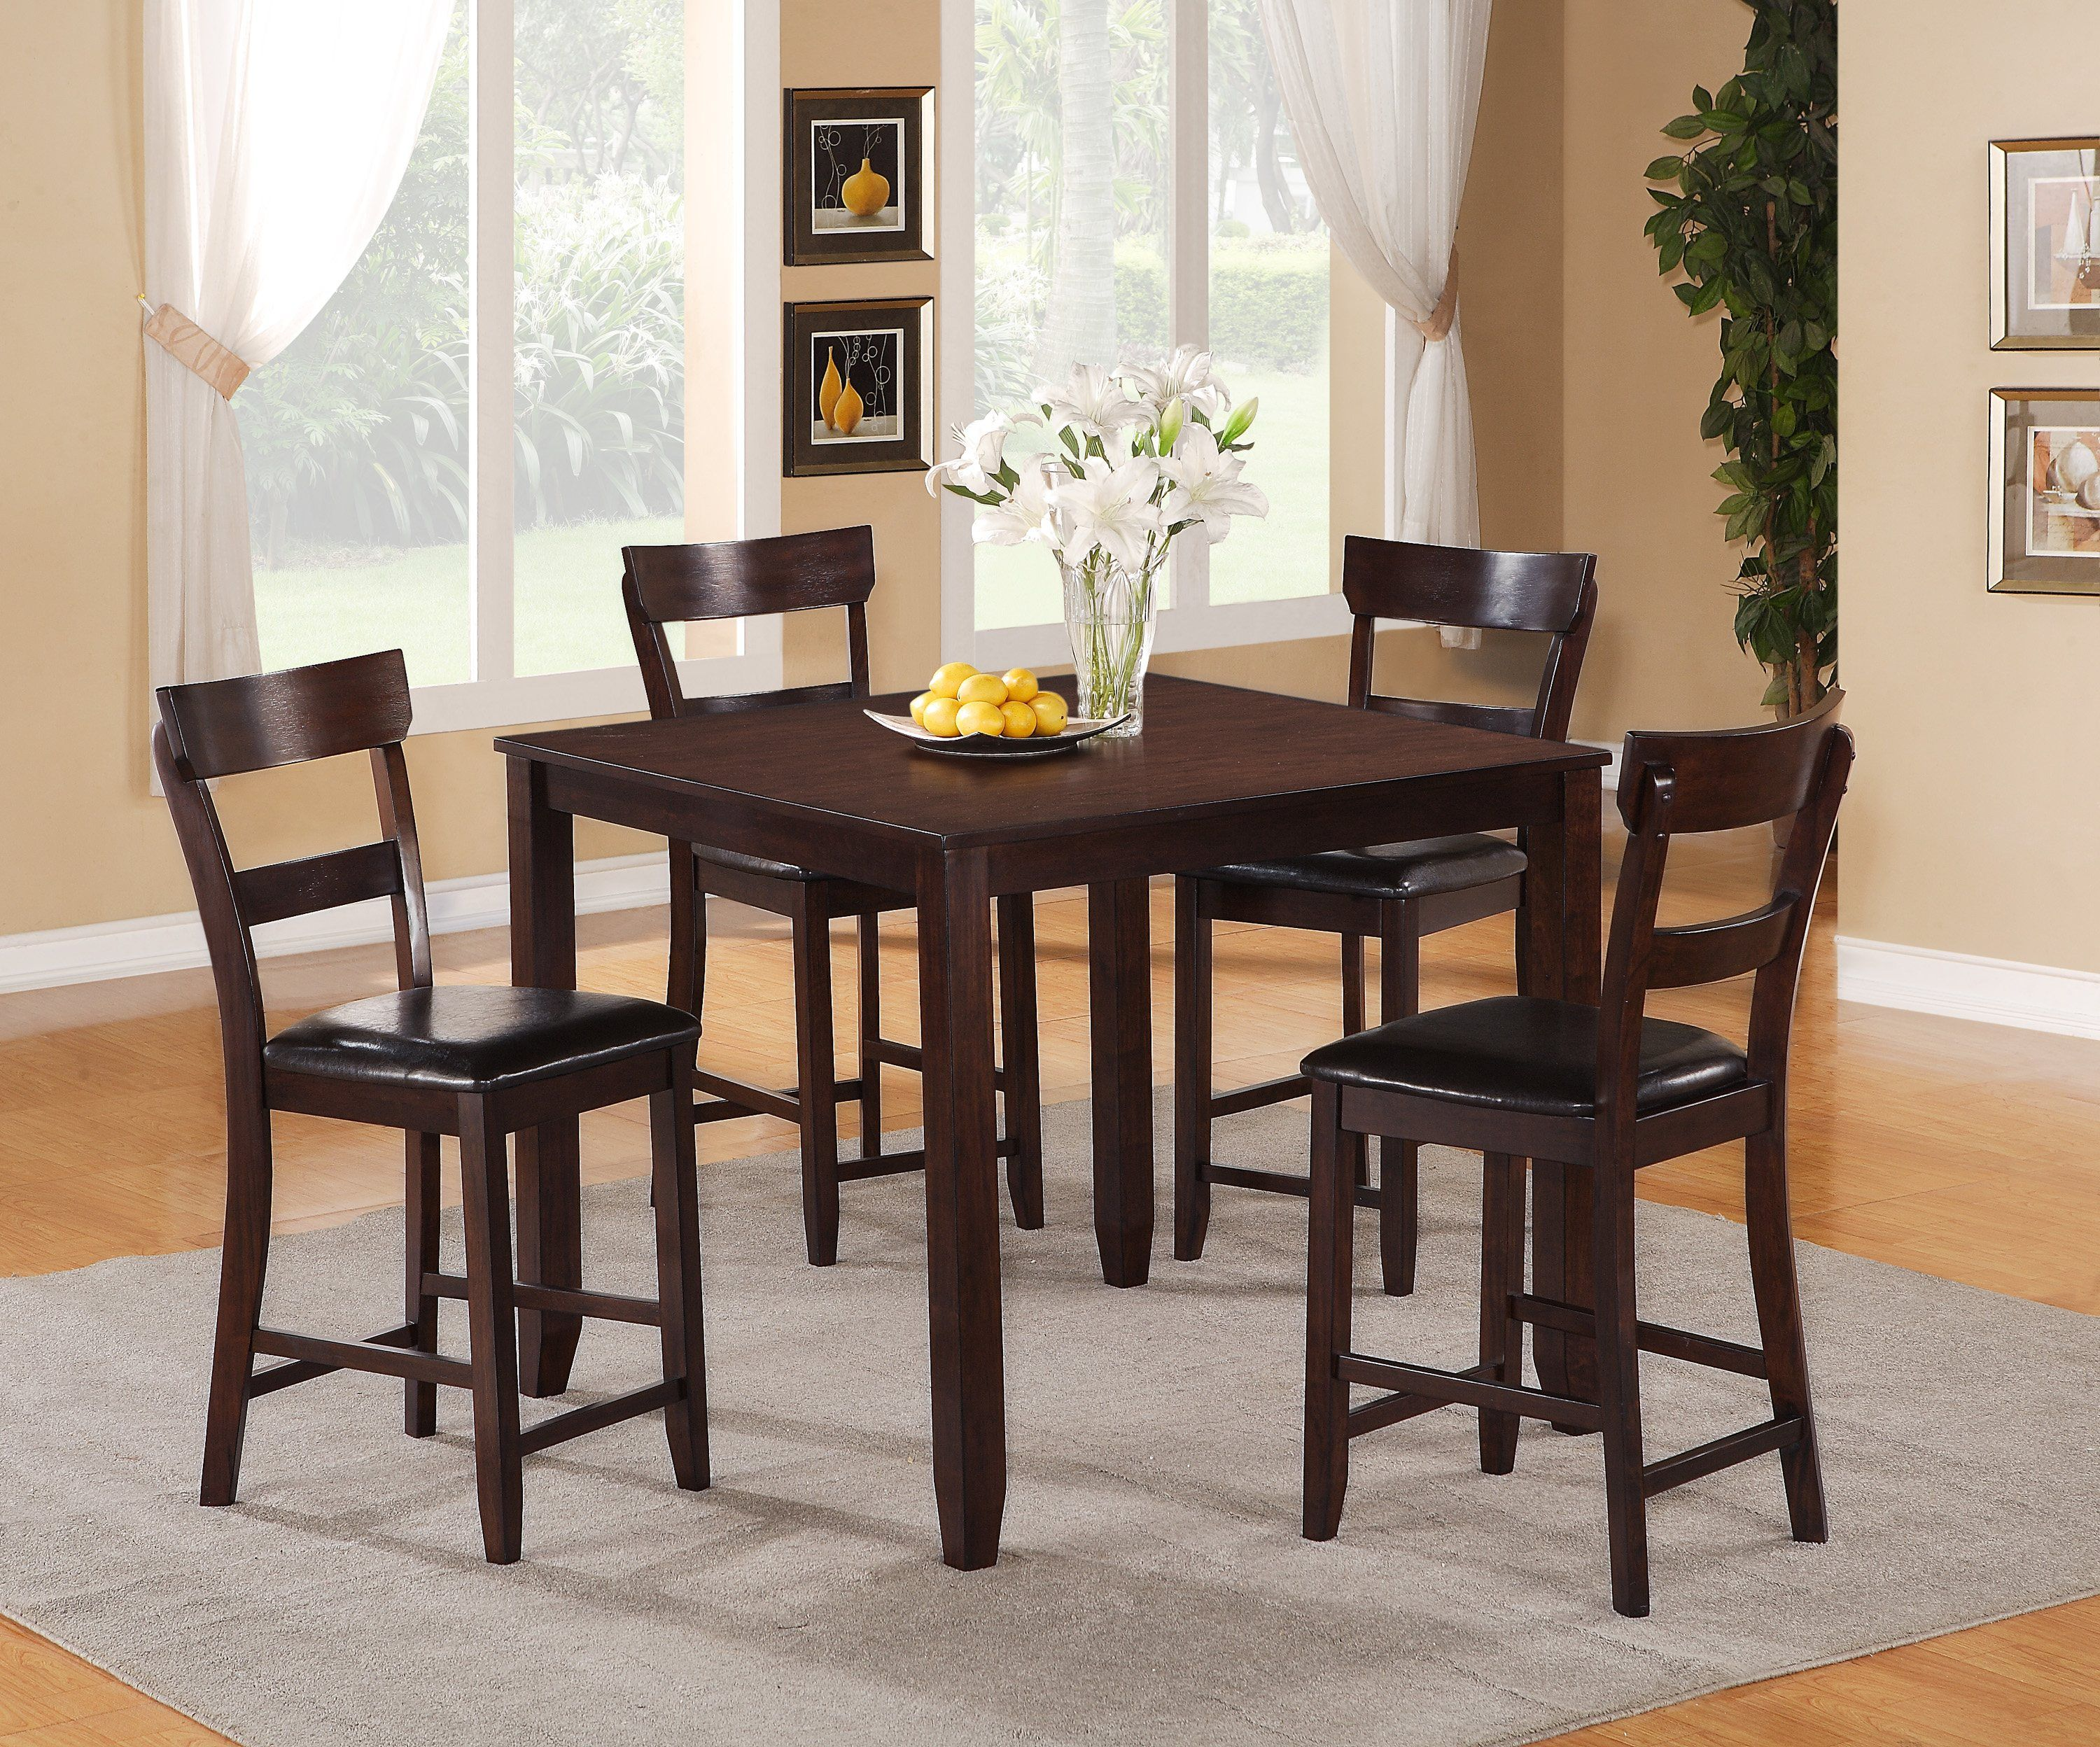 dining room set on clearance home interior gallery on dining room sets on clearance id=52798